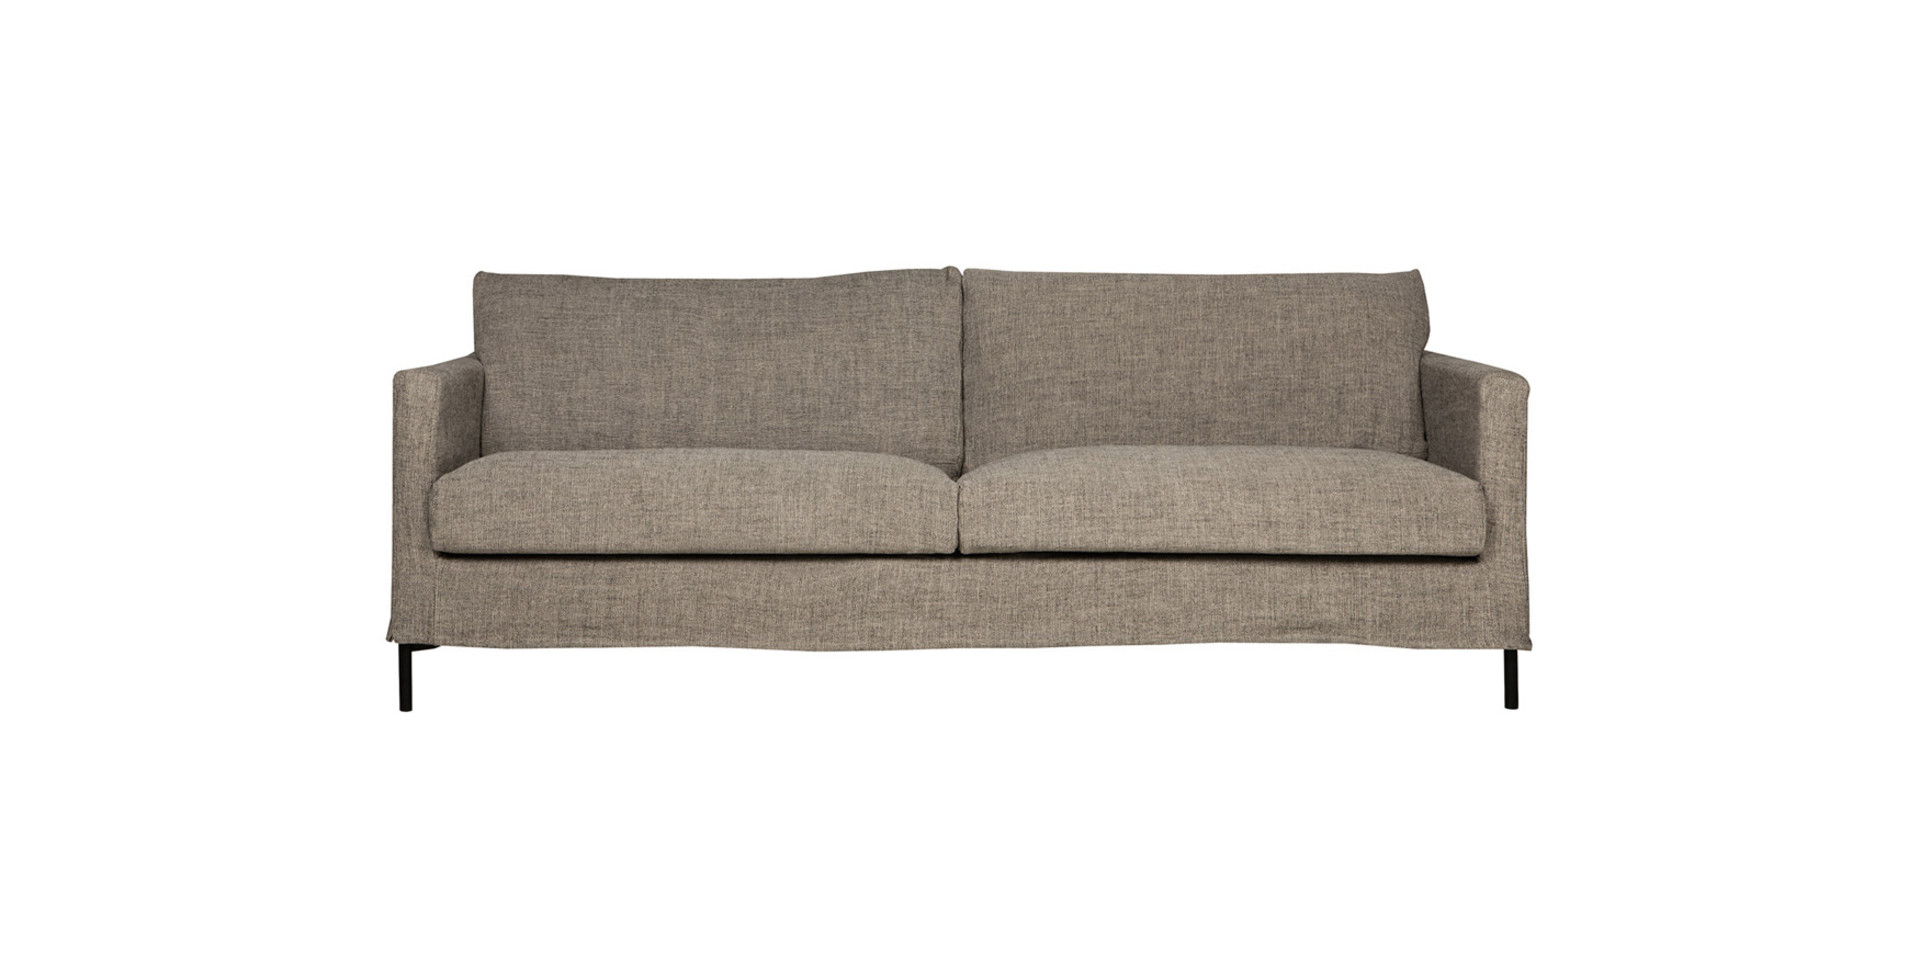 IMPULSE_3seater_linenL616_007_stone_1